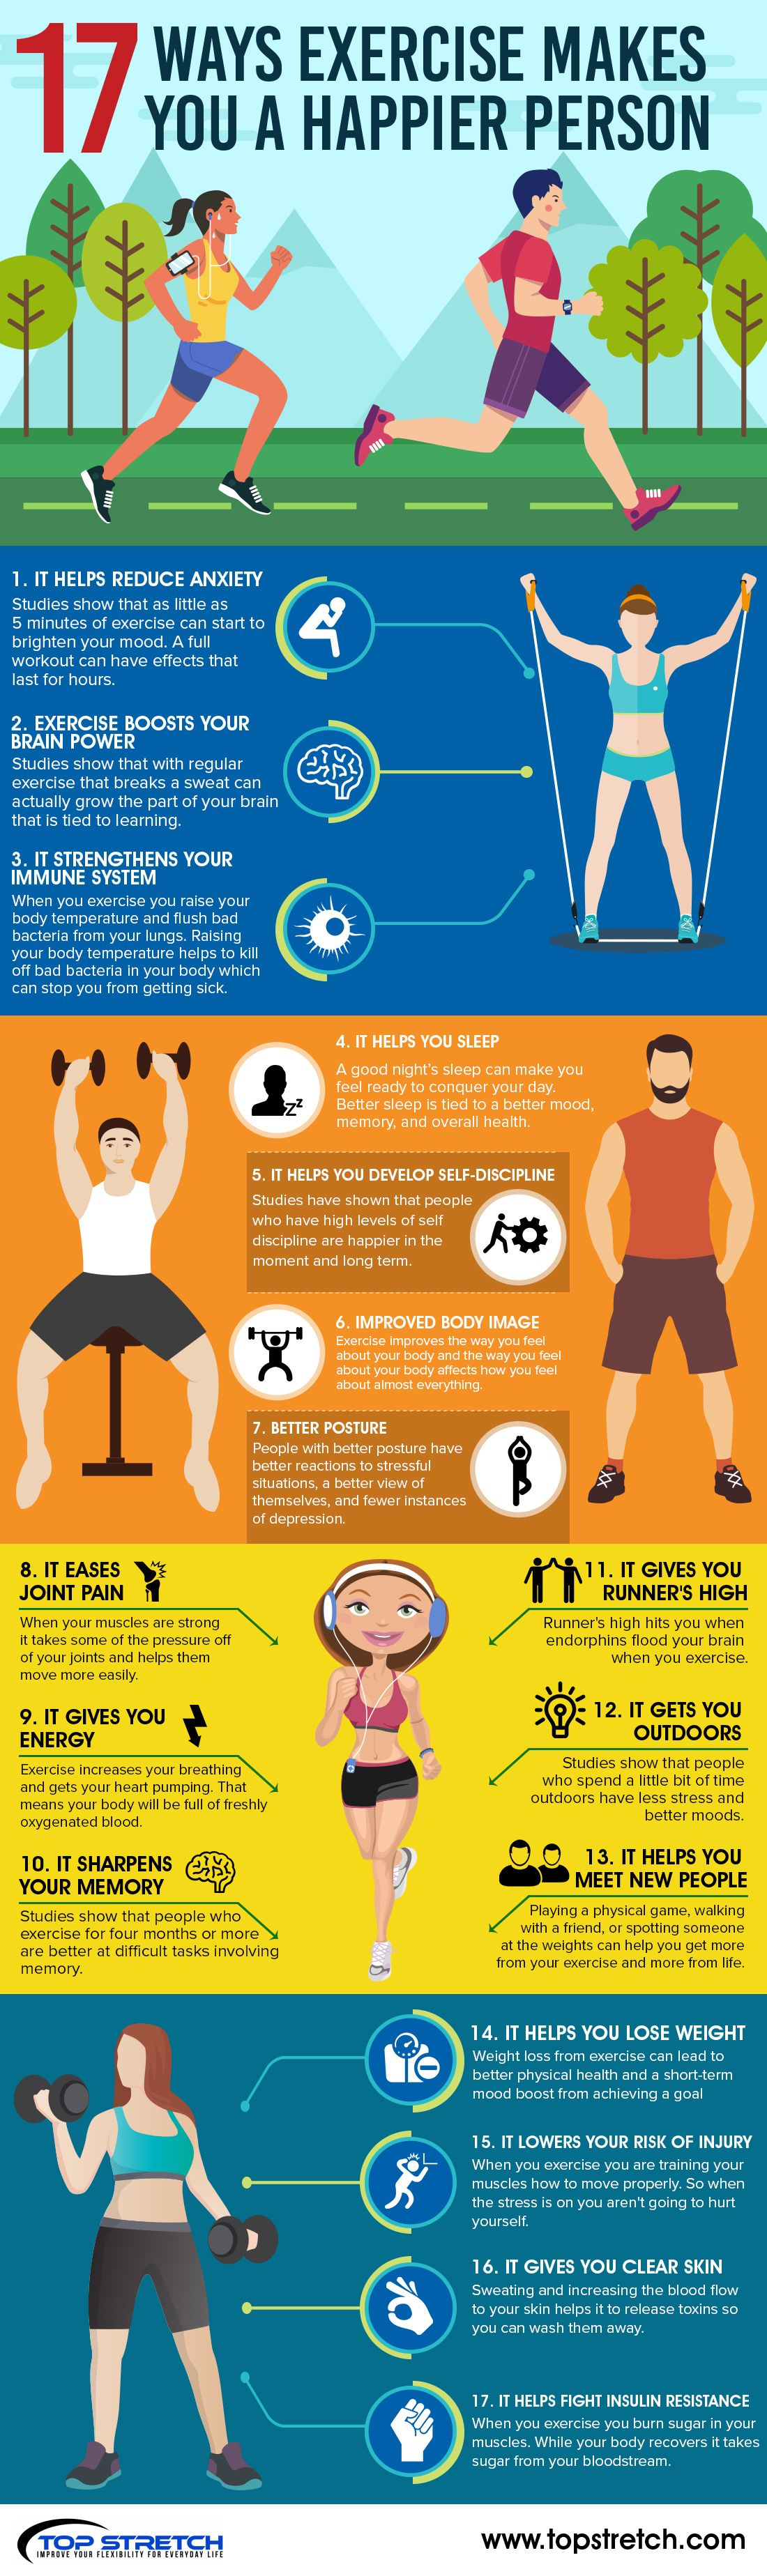 17 Ways Exercise Makes You a Happier Person #Infographic